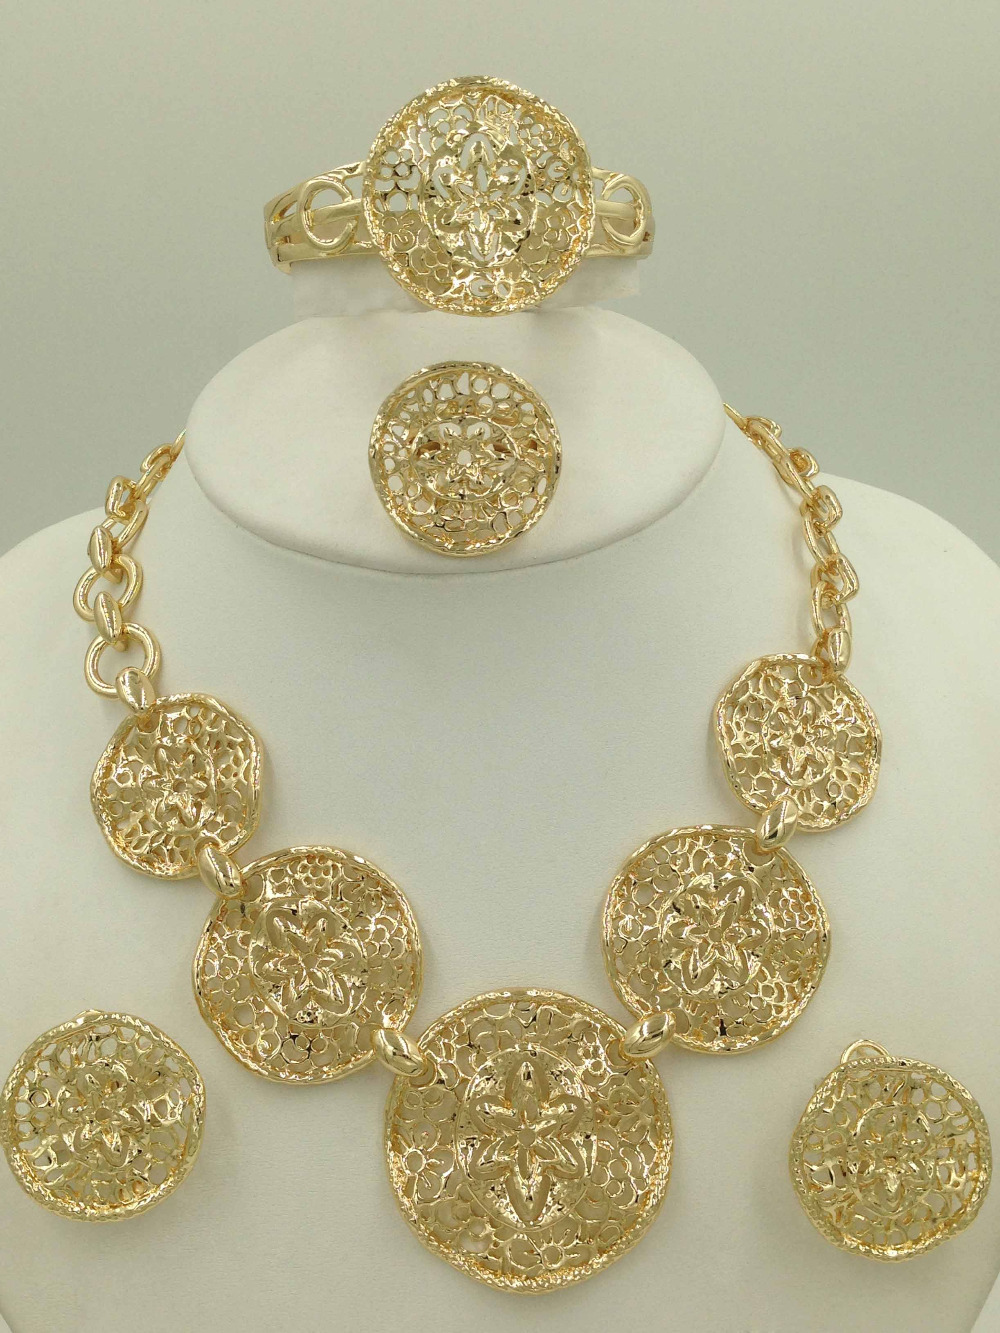 Gorgeous18K Dubai Gold Plated Jewelry Sets Fashion Summer Style